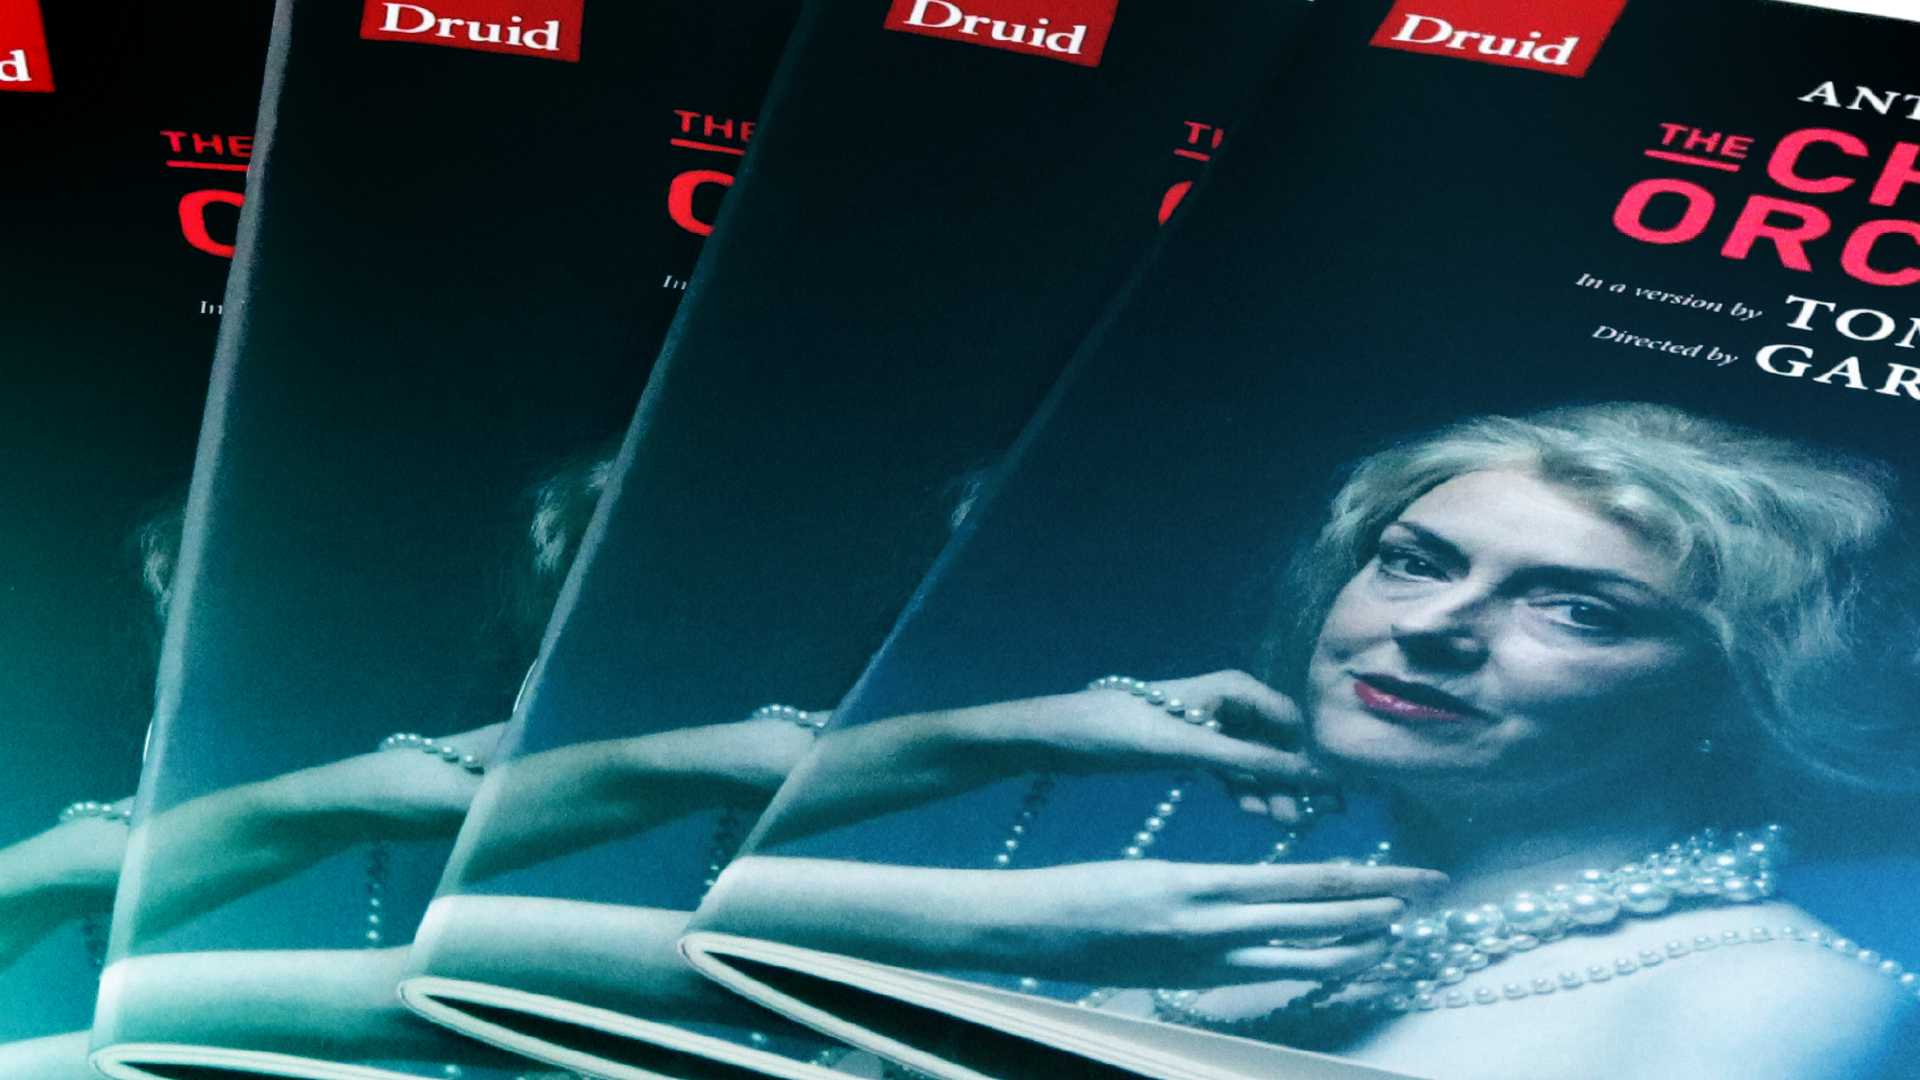 iSupply print work, Druid theatre brochure